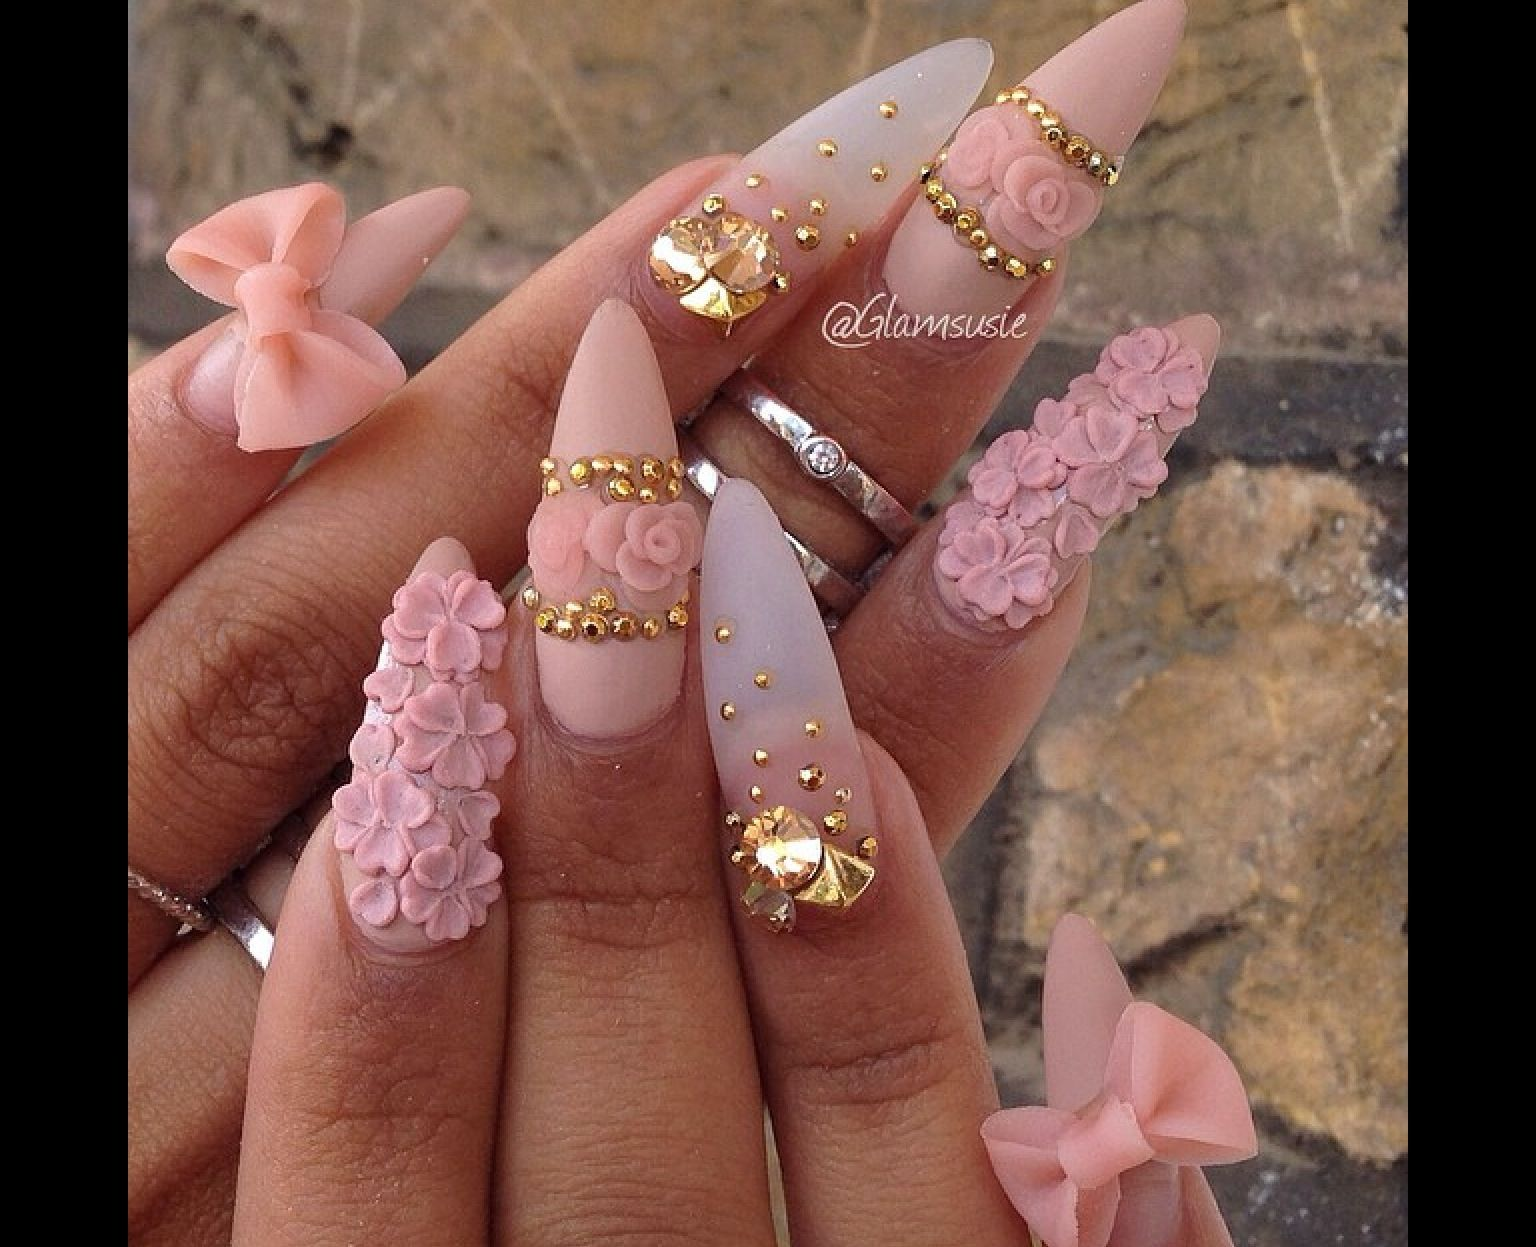 Girly and dainty | Nail design | Pinterest | Girly, Nail inspo and ...